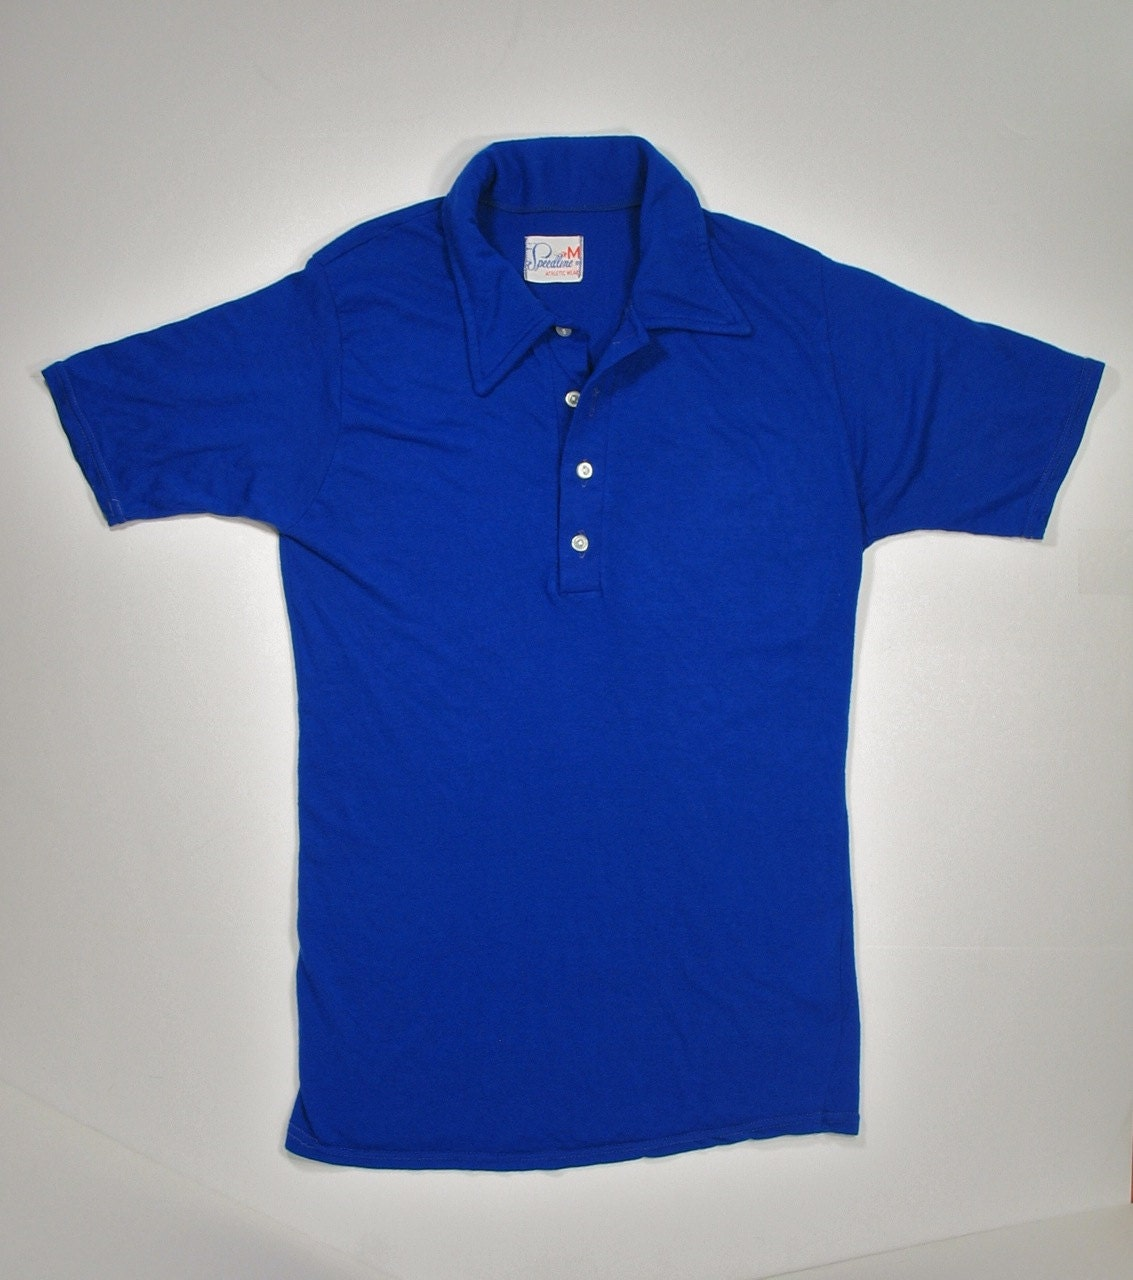 60s Knit Collared Shirt Royal Blue Mod Short Sleeve Four